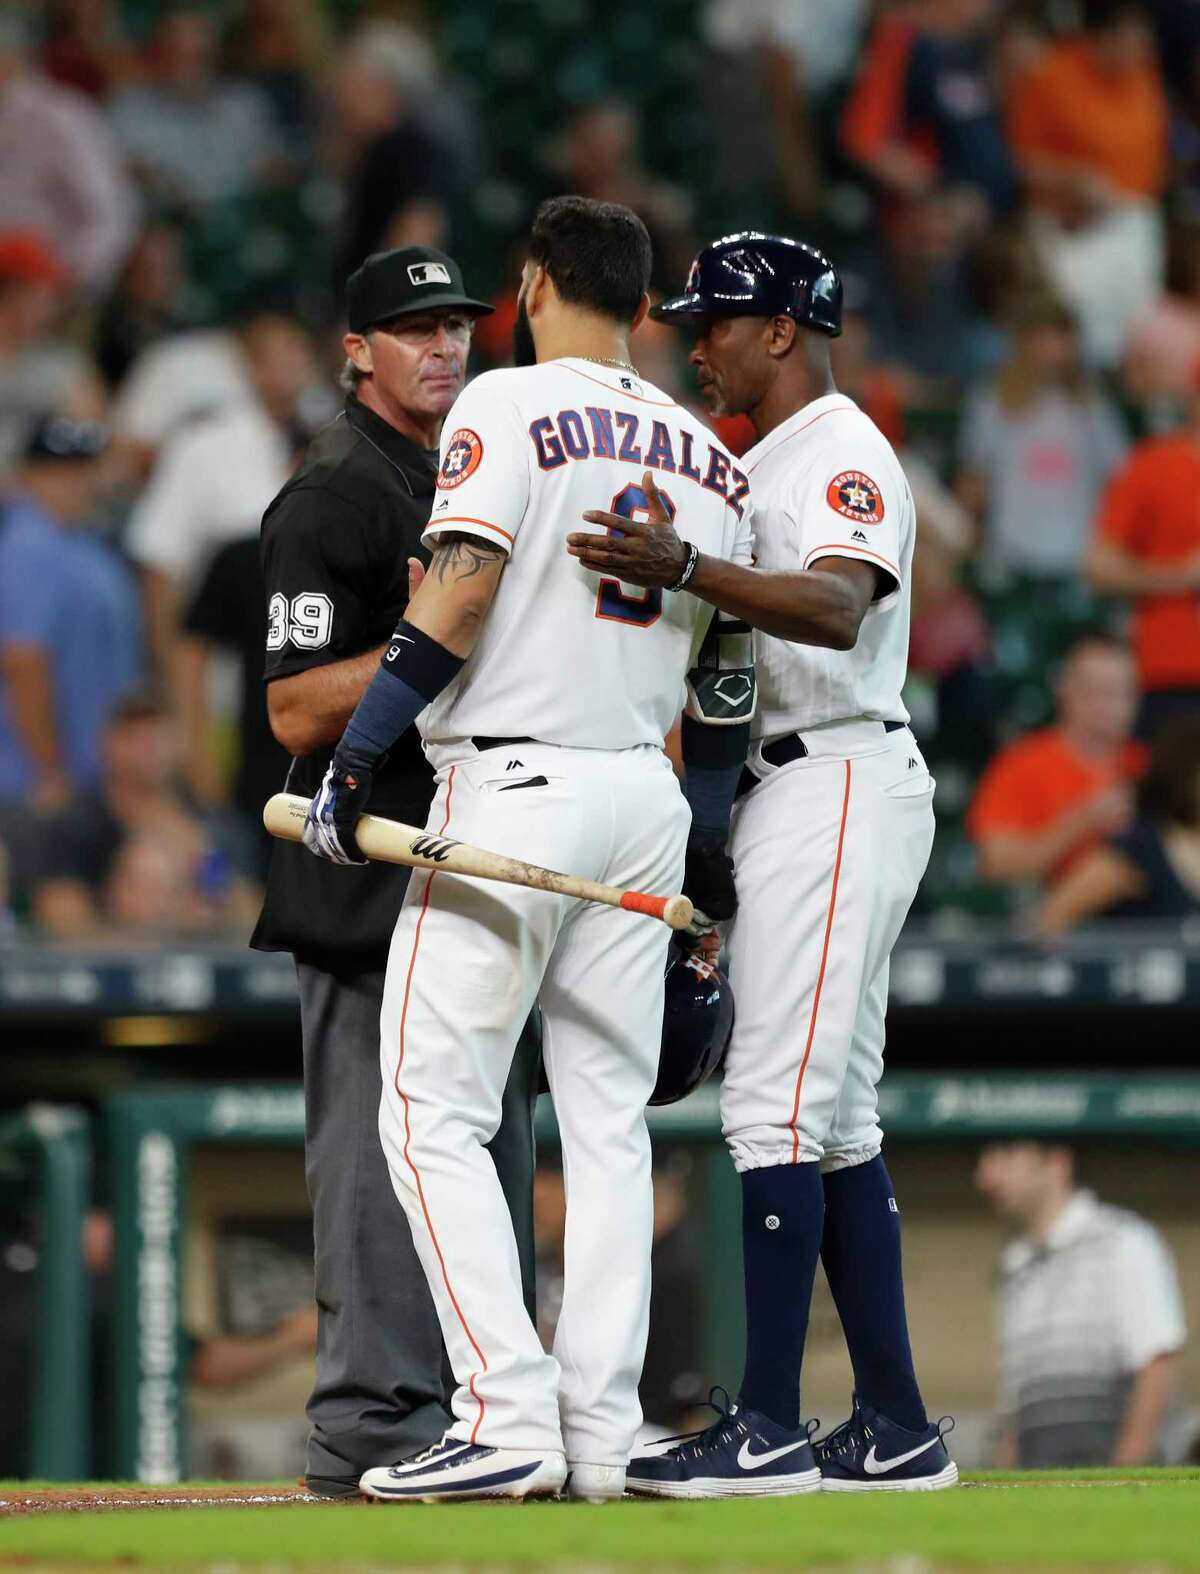 Houston Astros third base coach Gary Pettis (8) tries to pull Marwin Gonzalez (9) away as he argued with home plate umpire Paul Nauert after striking out to end in the game during an MLB game at Minute Maid Park, Thursday, Aug. 17, 2017, in Houston.